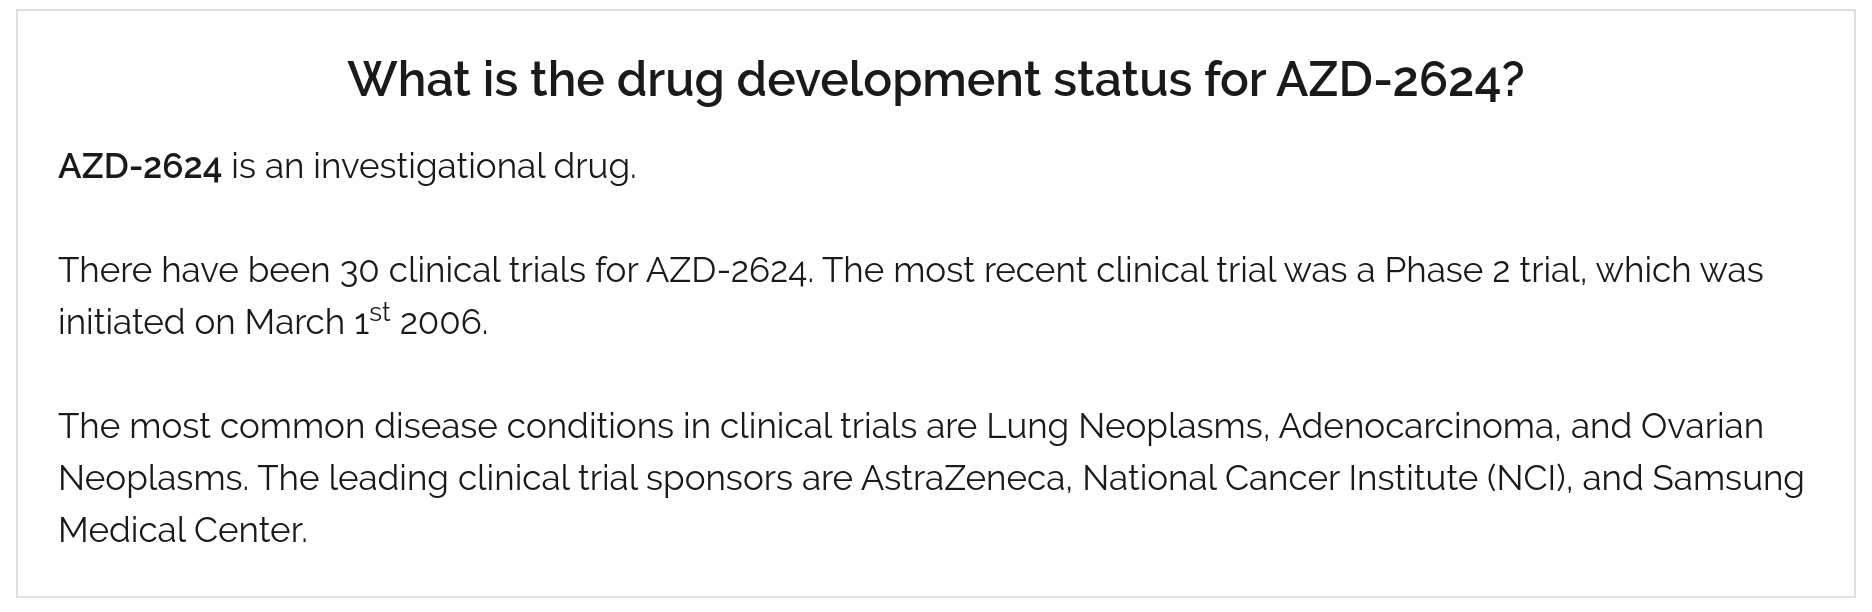 drugs in development